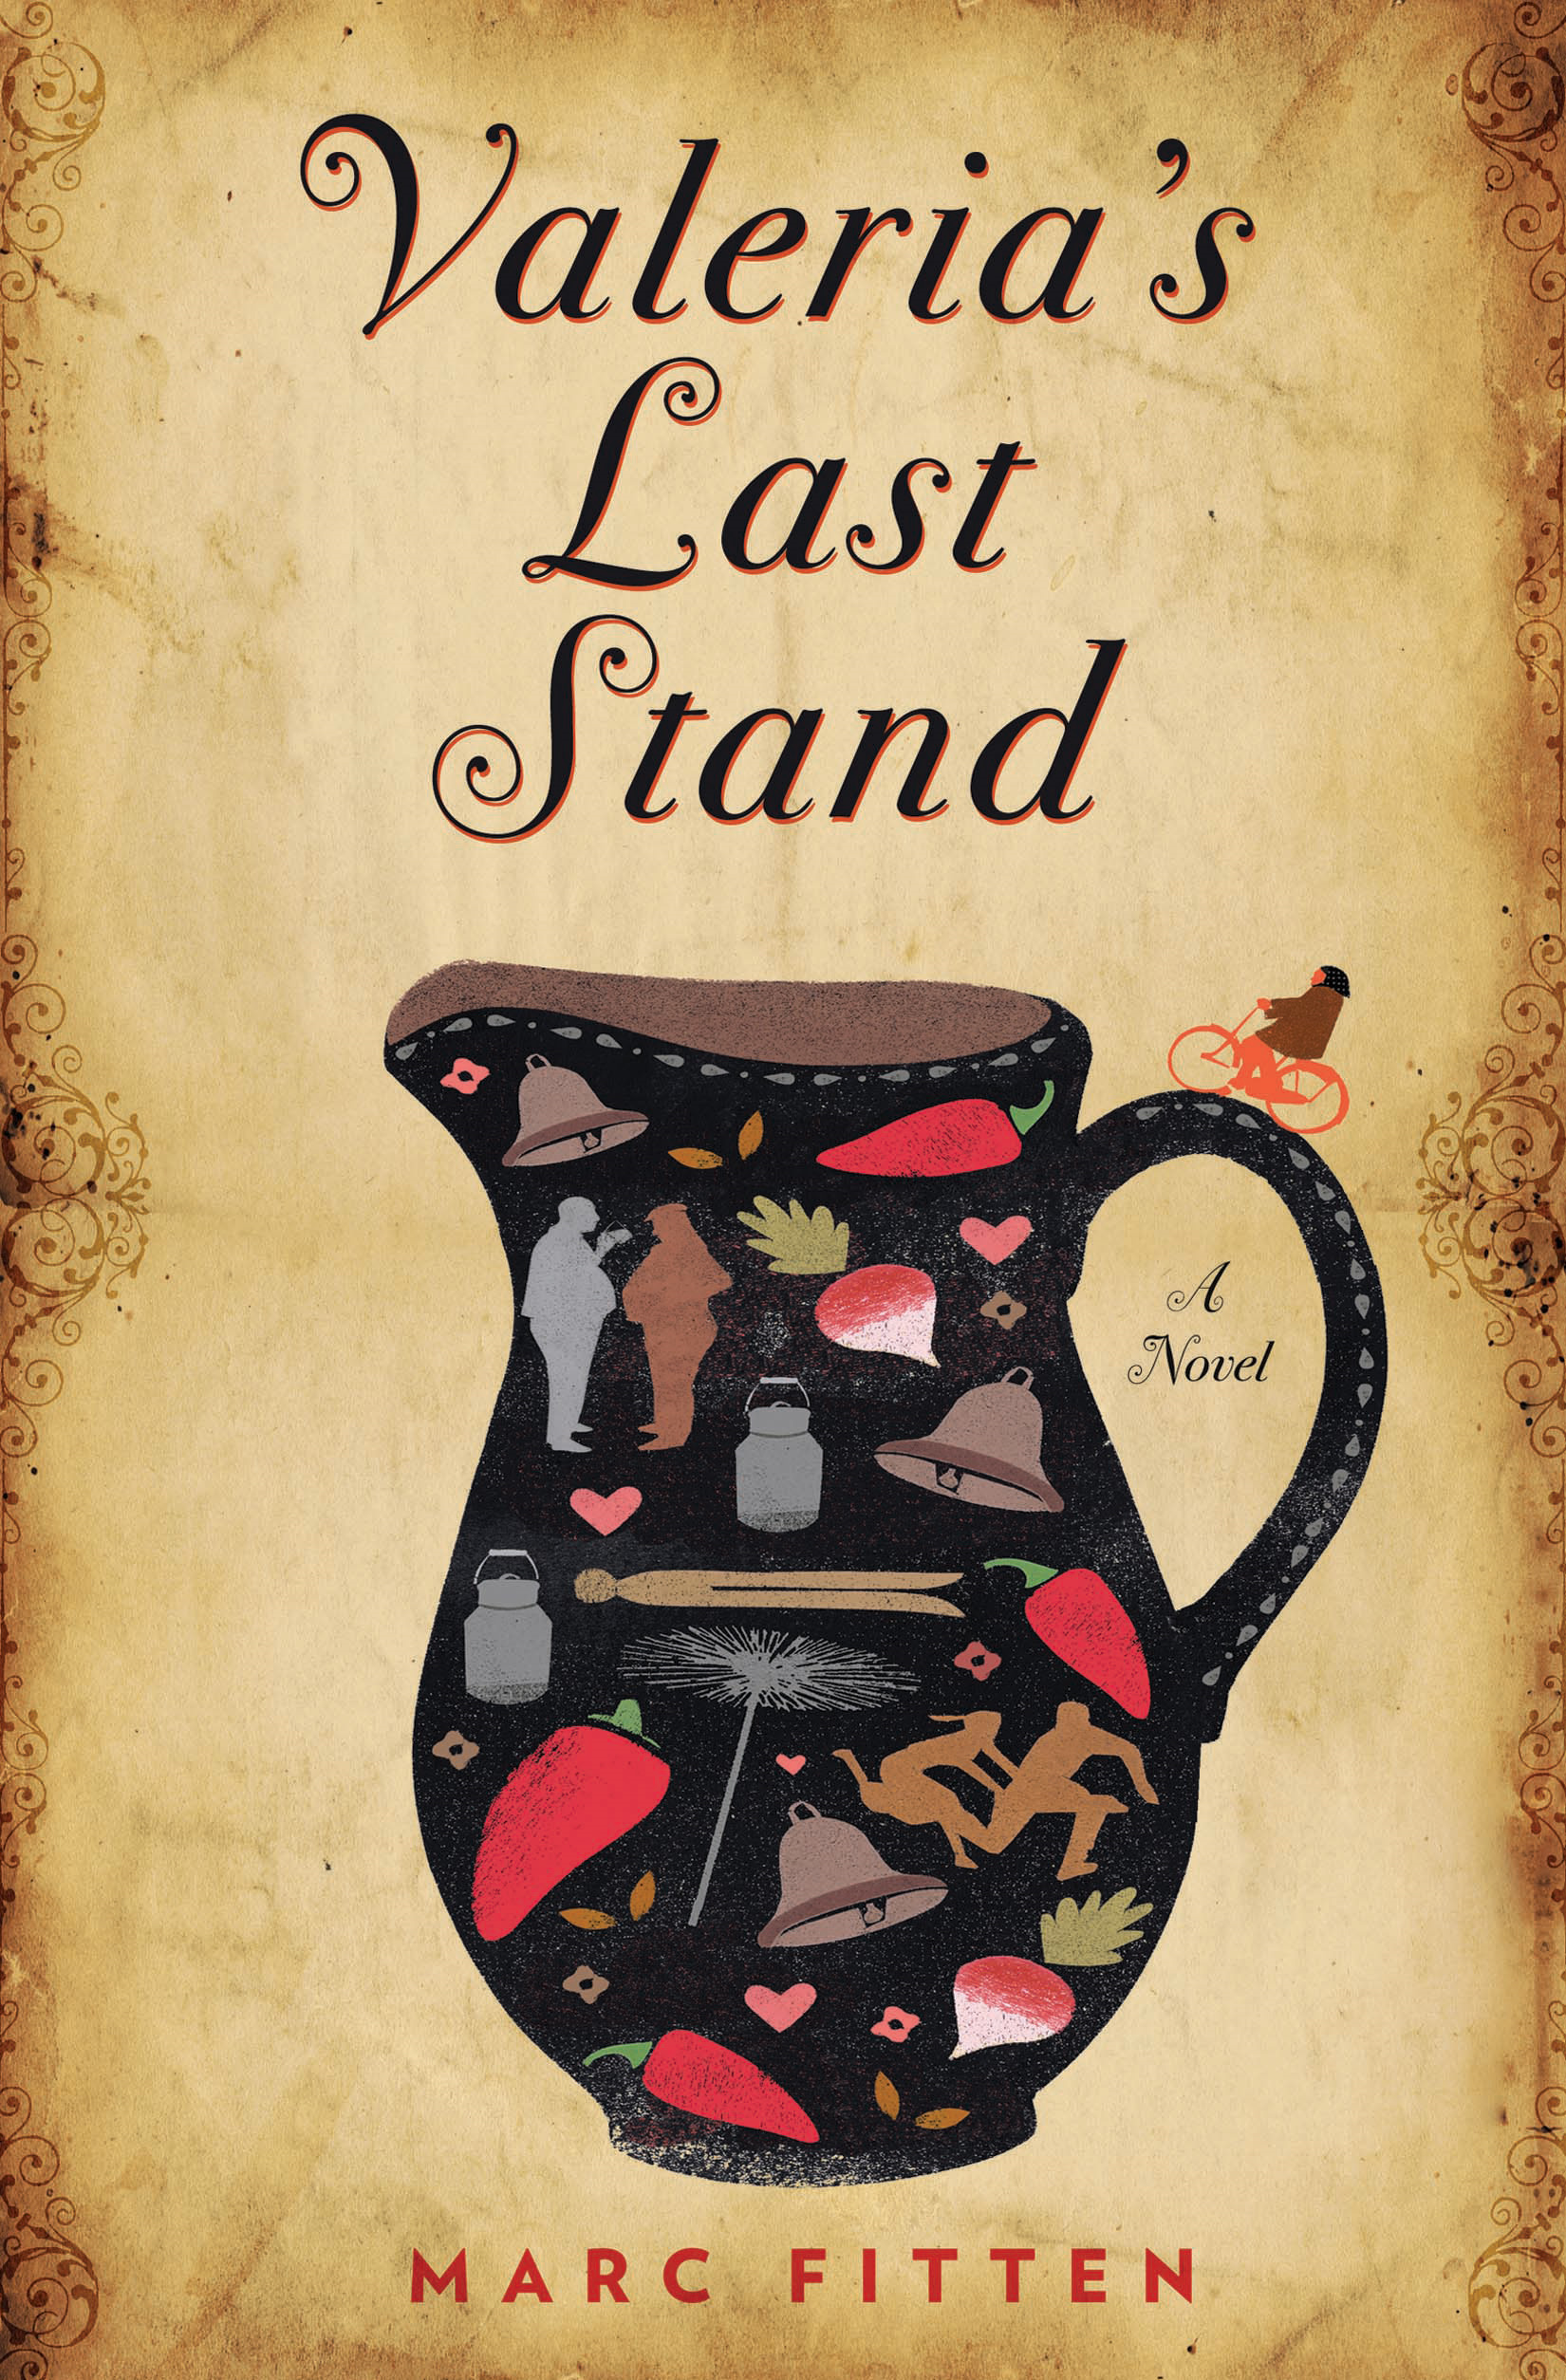 Valeria's Last Stand By: Marc Fitten